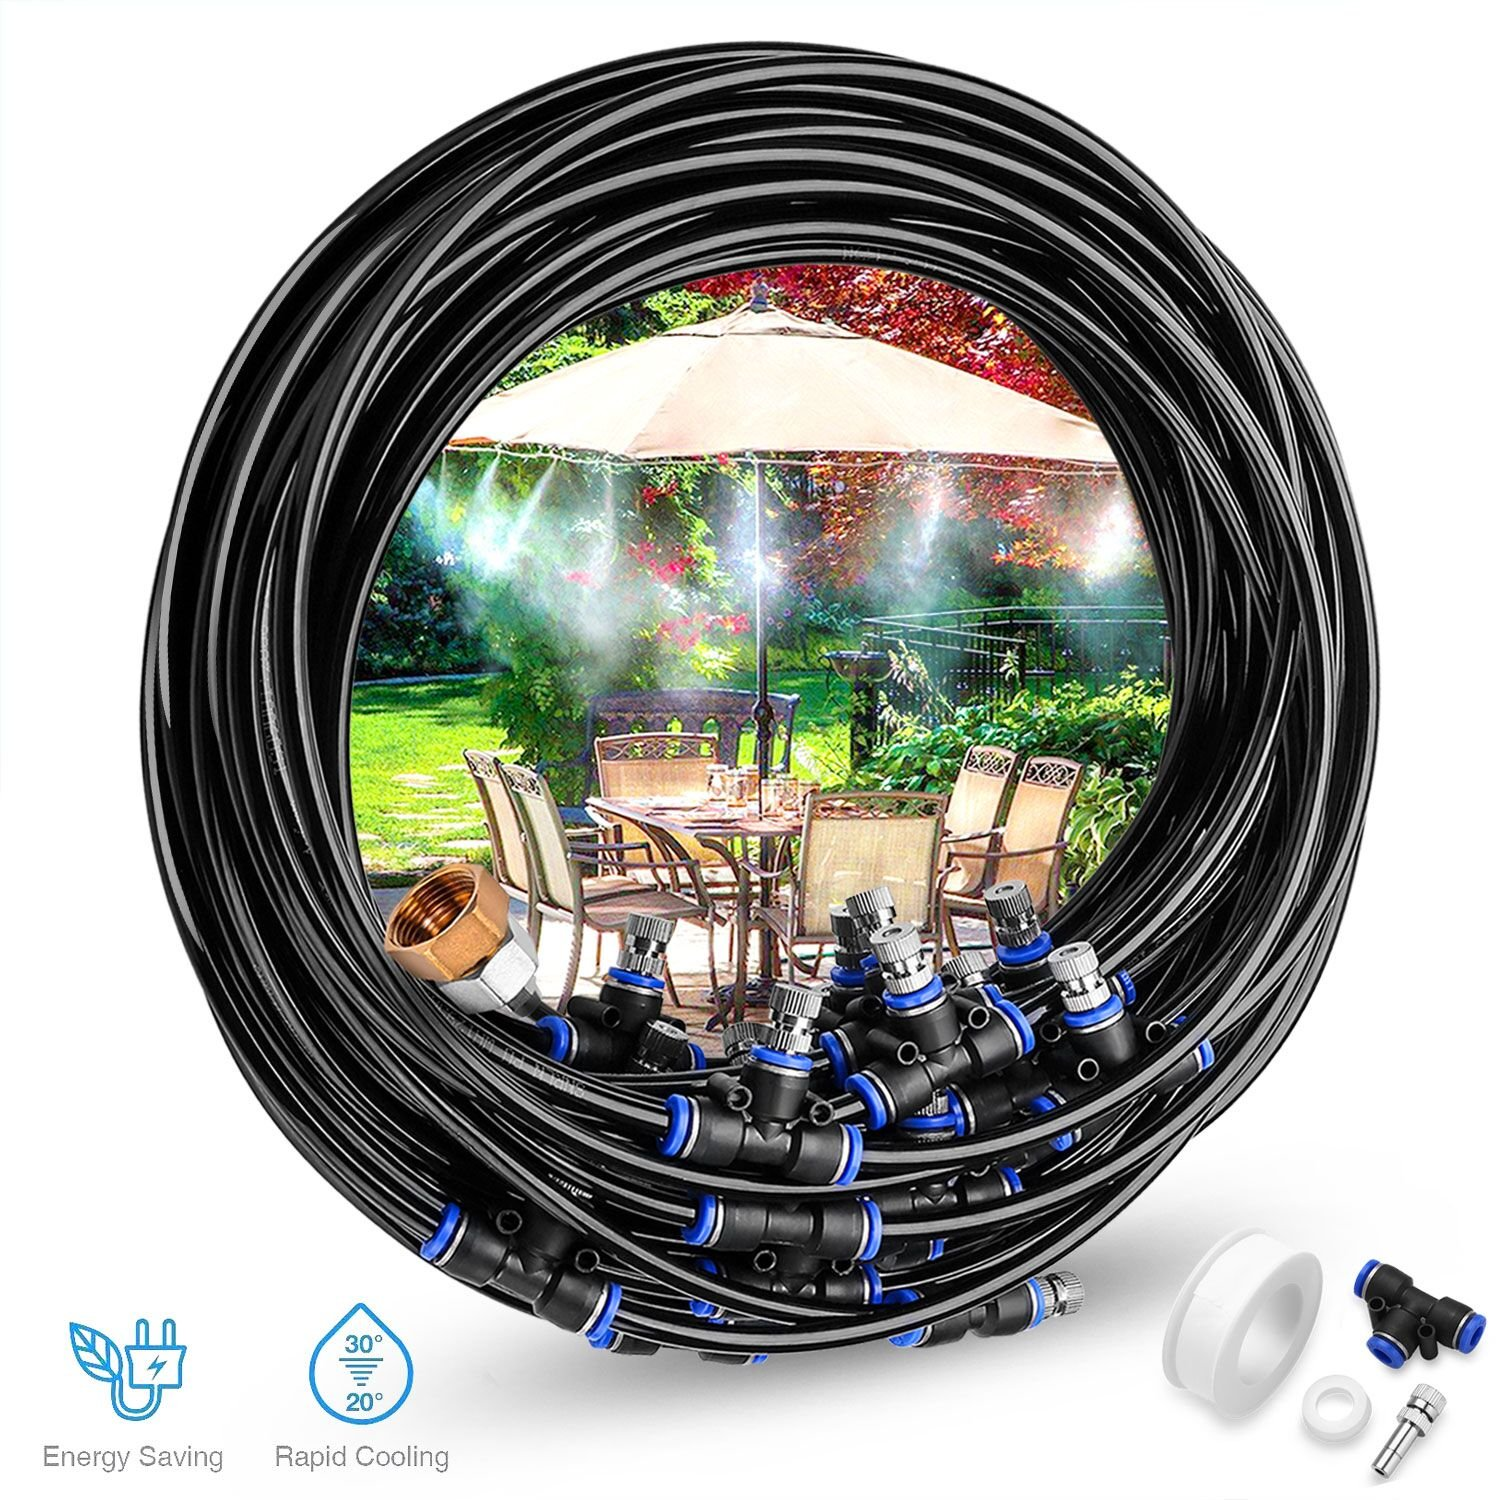 Gesentur Irrigation System, Misting Cooling System Kit- 26.2ft(8M) Misting Line + 9 Metal Mist Nozzles + a Brass Adapter(3/4) for Outdoor Patio Garden Watering Reptile Mosquito Prevent